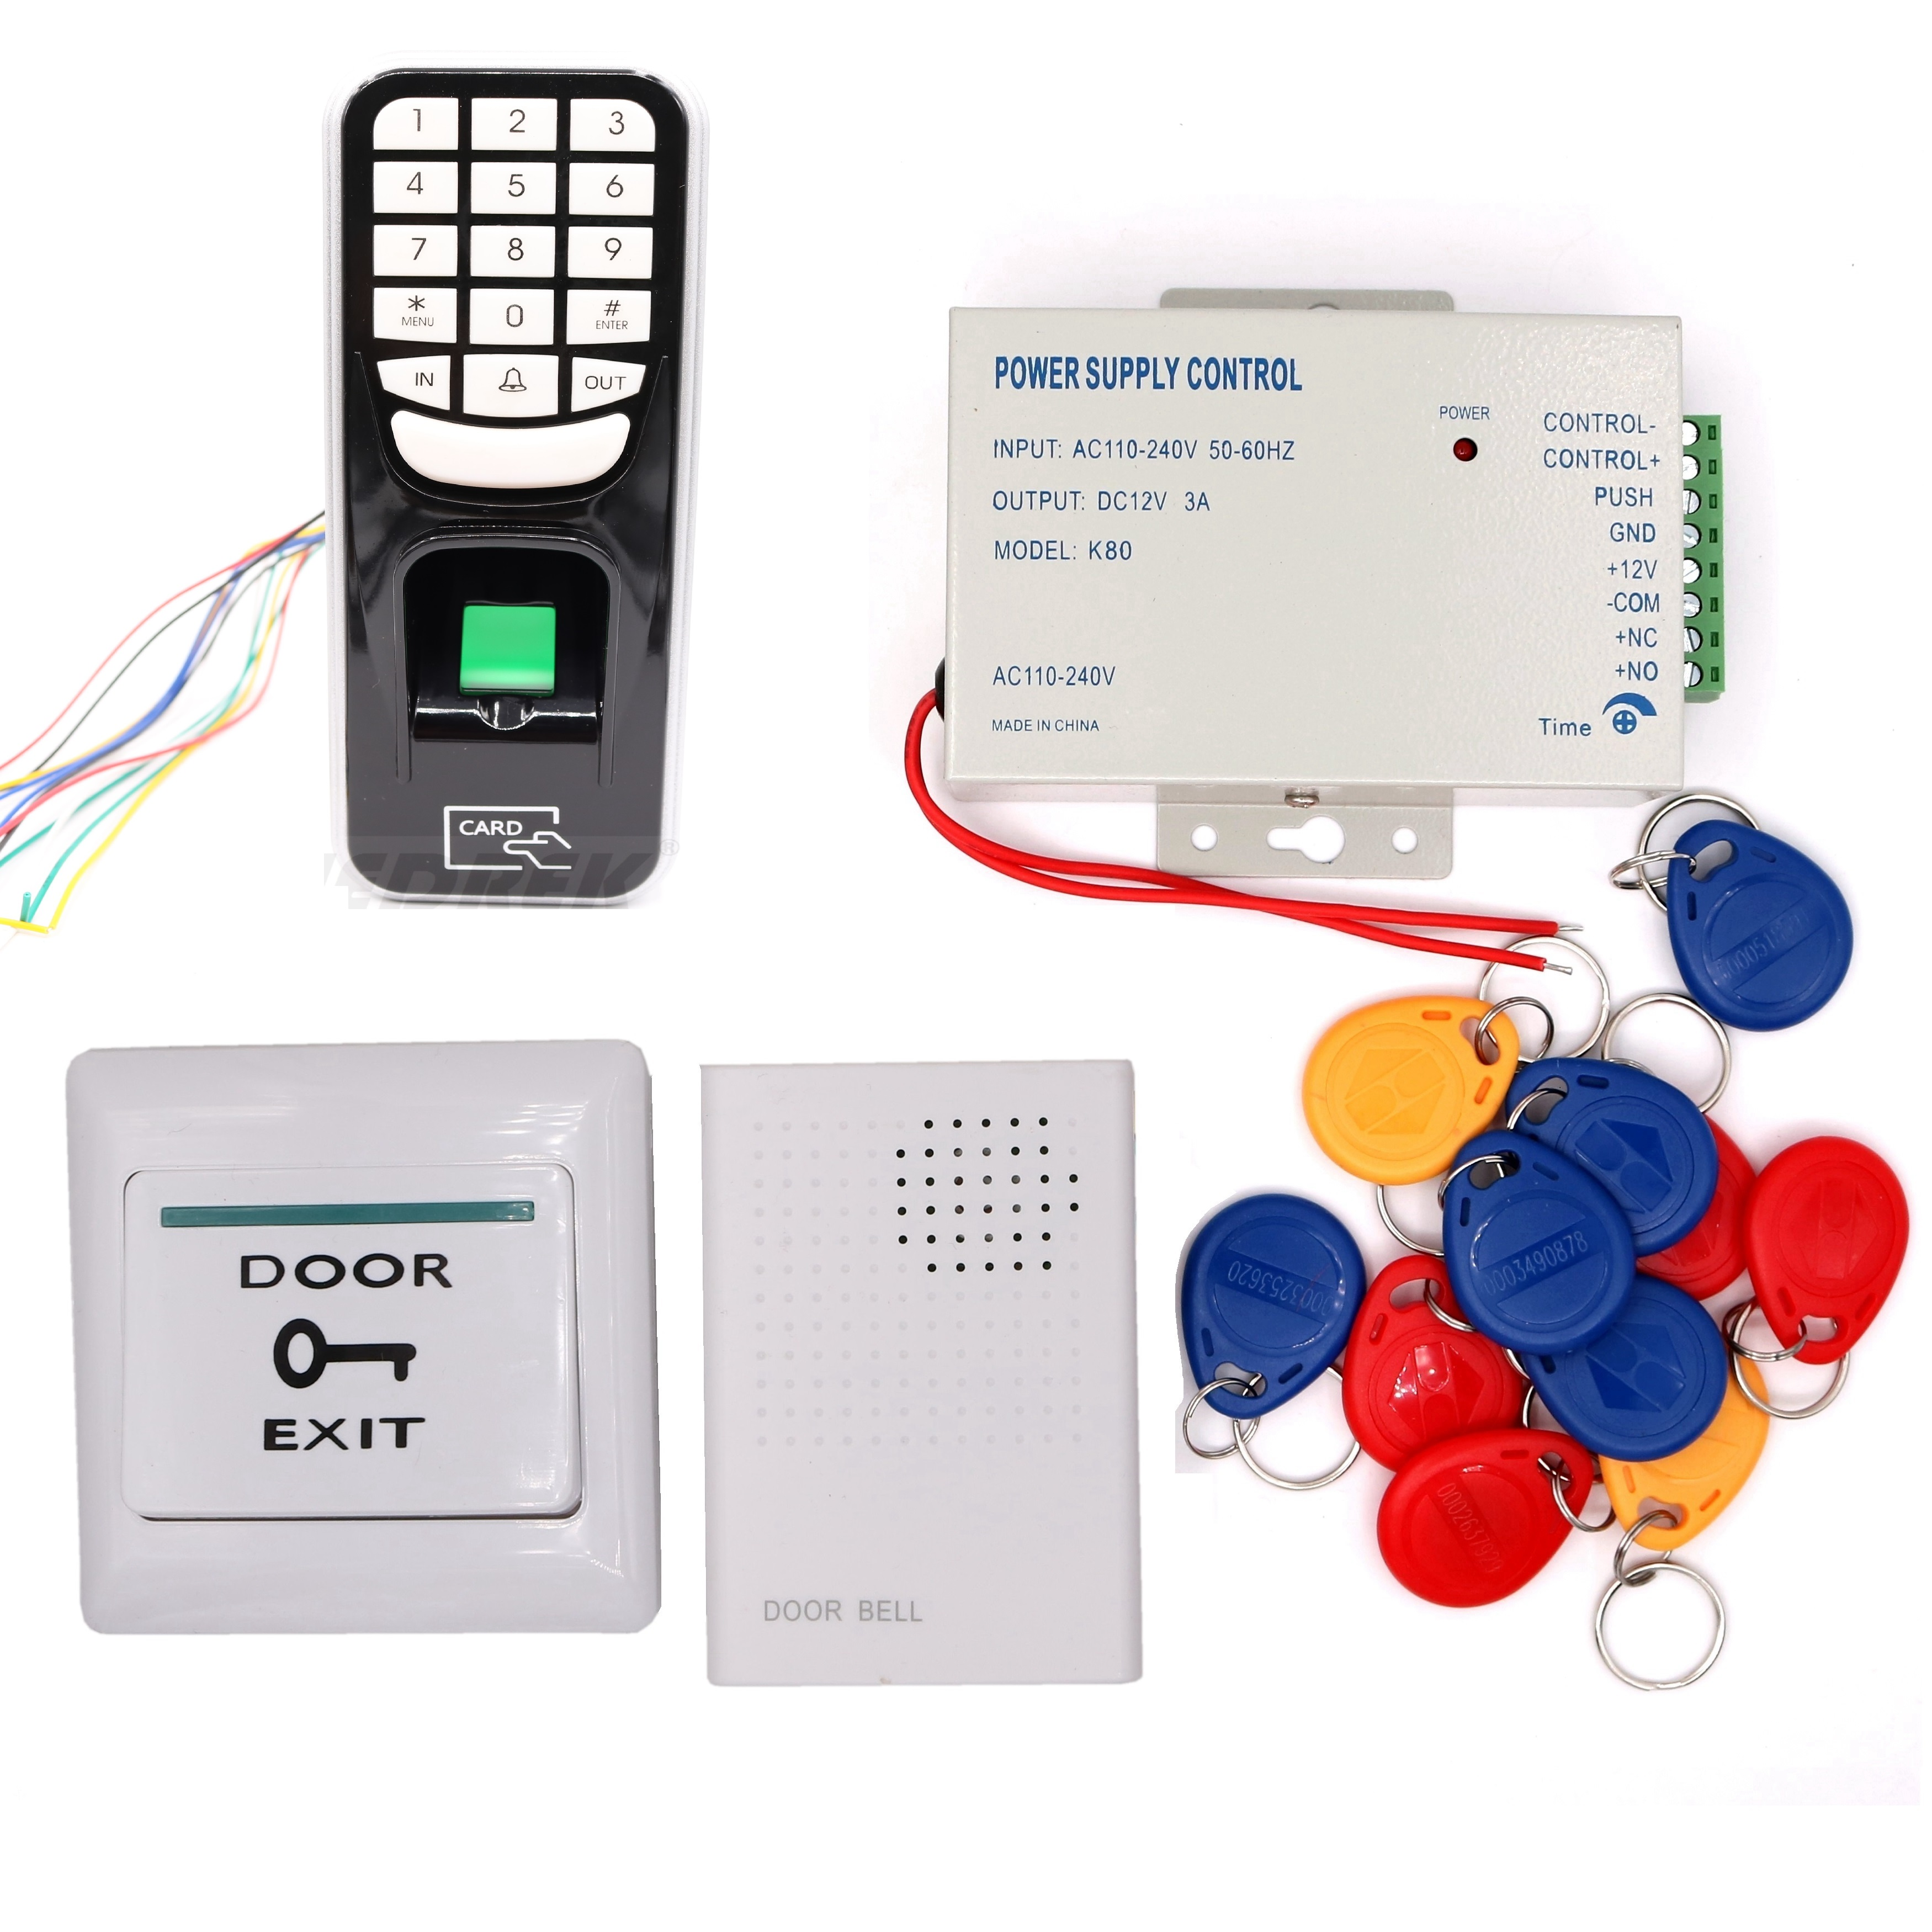 Biometric RFID 125KHz Proximity Card Door Entry Building Door Access Control System (Keypad Power Exit button Doorbell Keyfob) biometric face and fingerprint access controller tcp ip zk multibio700 facial time attendance and door security control system